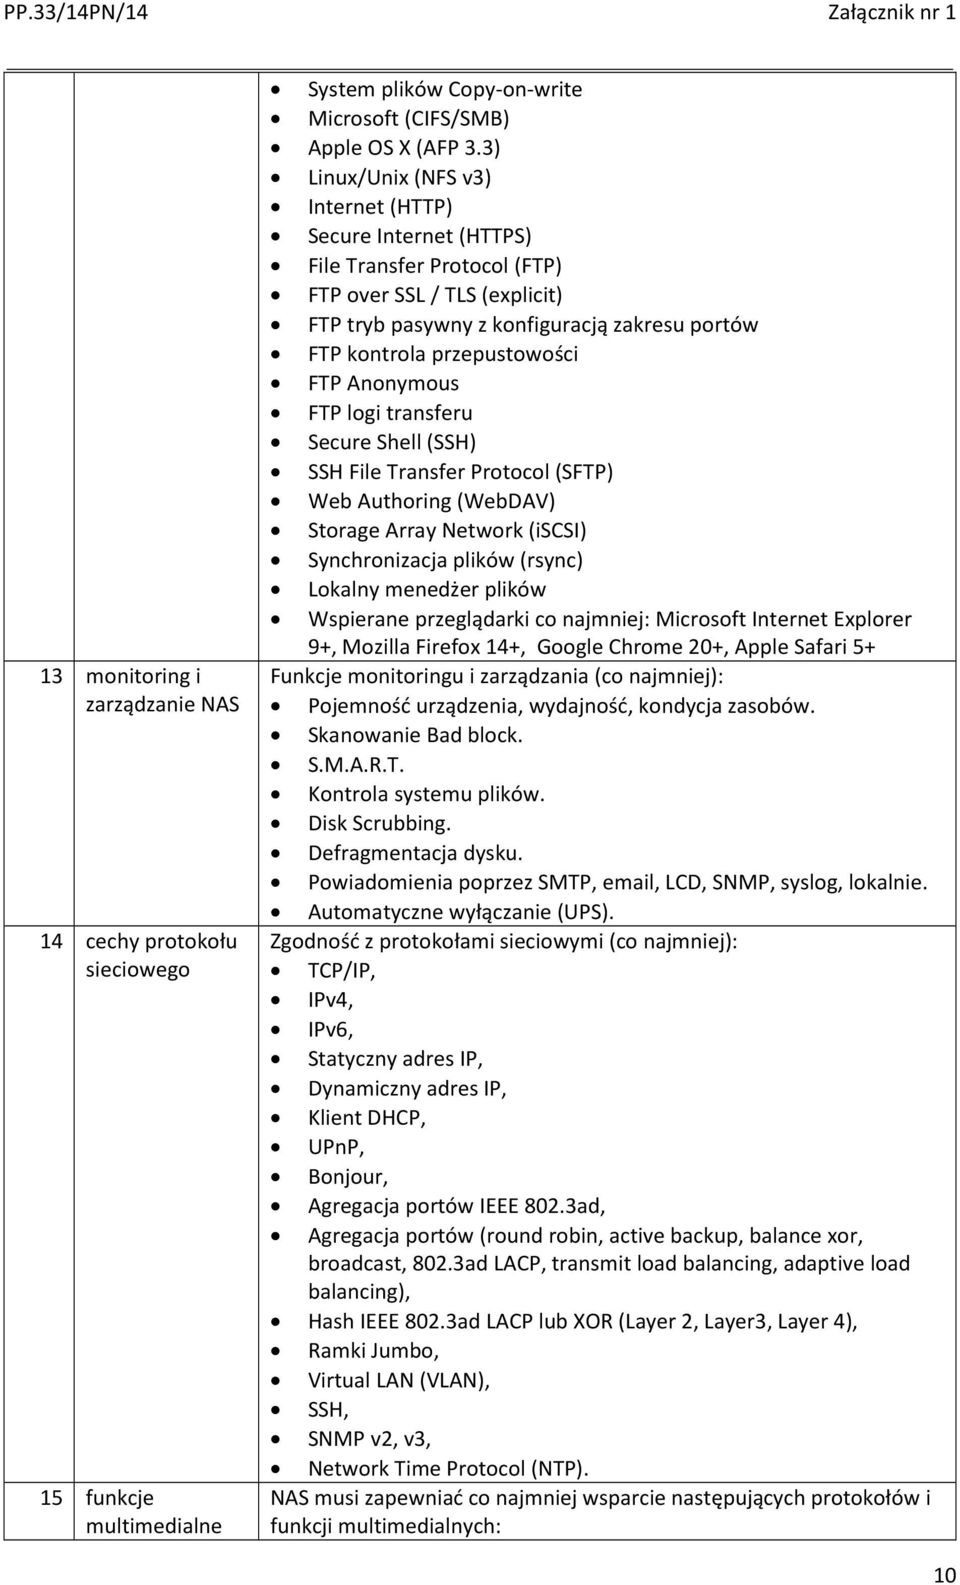 FTP Anonymous FTP logi transferu Secure Shell (SSH) SSH File Transfer Protocol (SFTP) Web Authoring (WebDAV) Storage Array Network (iscsi) Synchronizacja plików (rsync) Lokalny menedżer plików